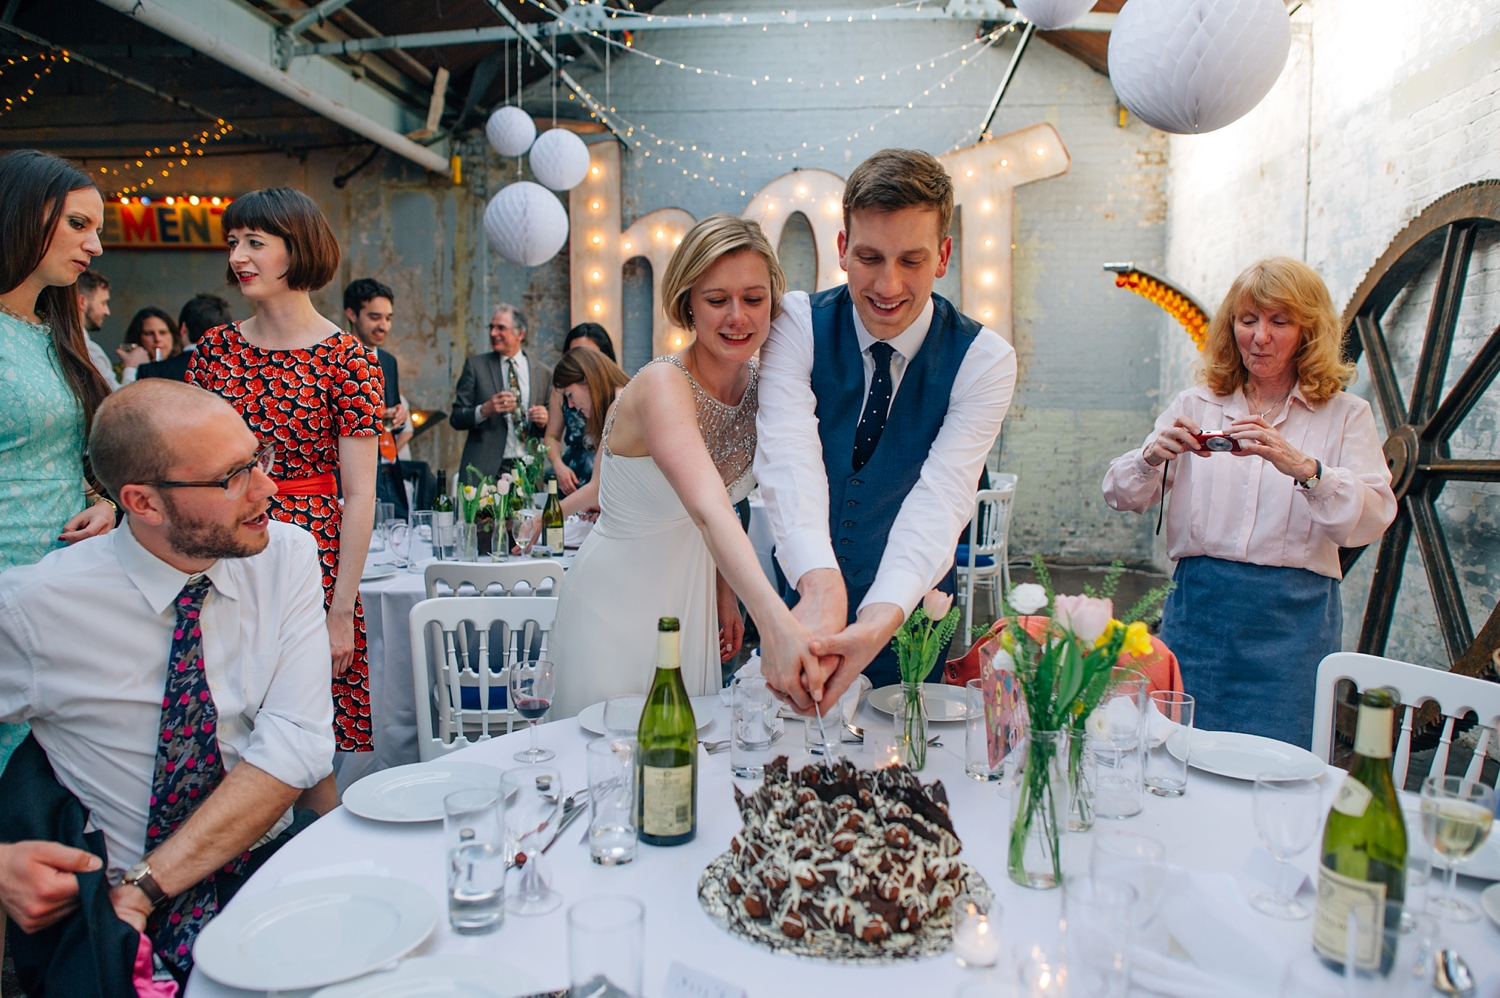 0179-lisa-devine-alternative-wedding-photography-london-hackney-dalston-london-photography-townhall-hotel.JPG